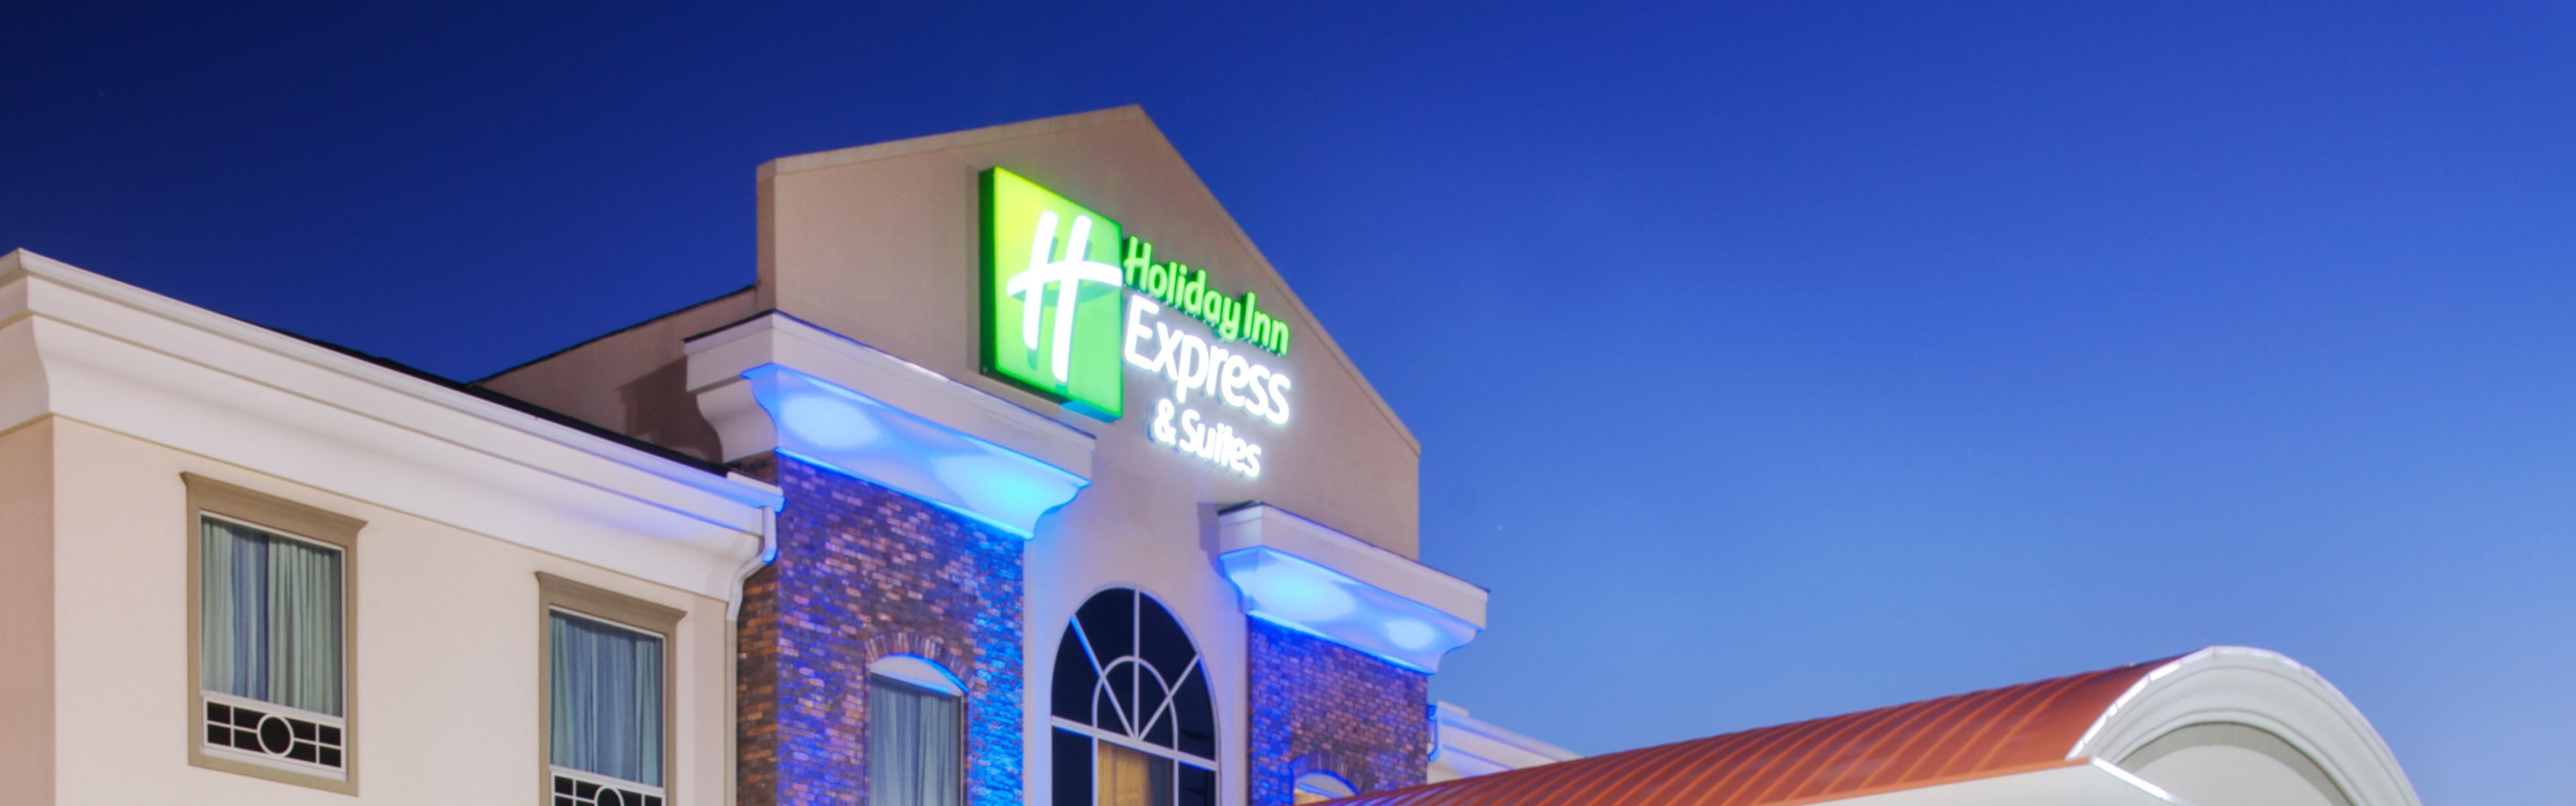 Holiday Inn Express & Suites Jasper image 0